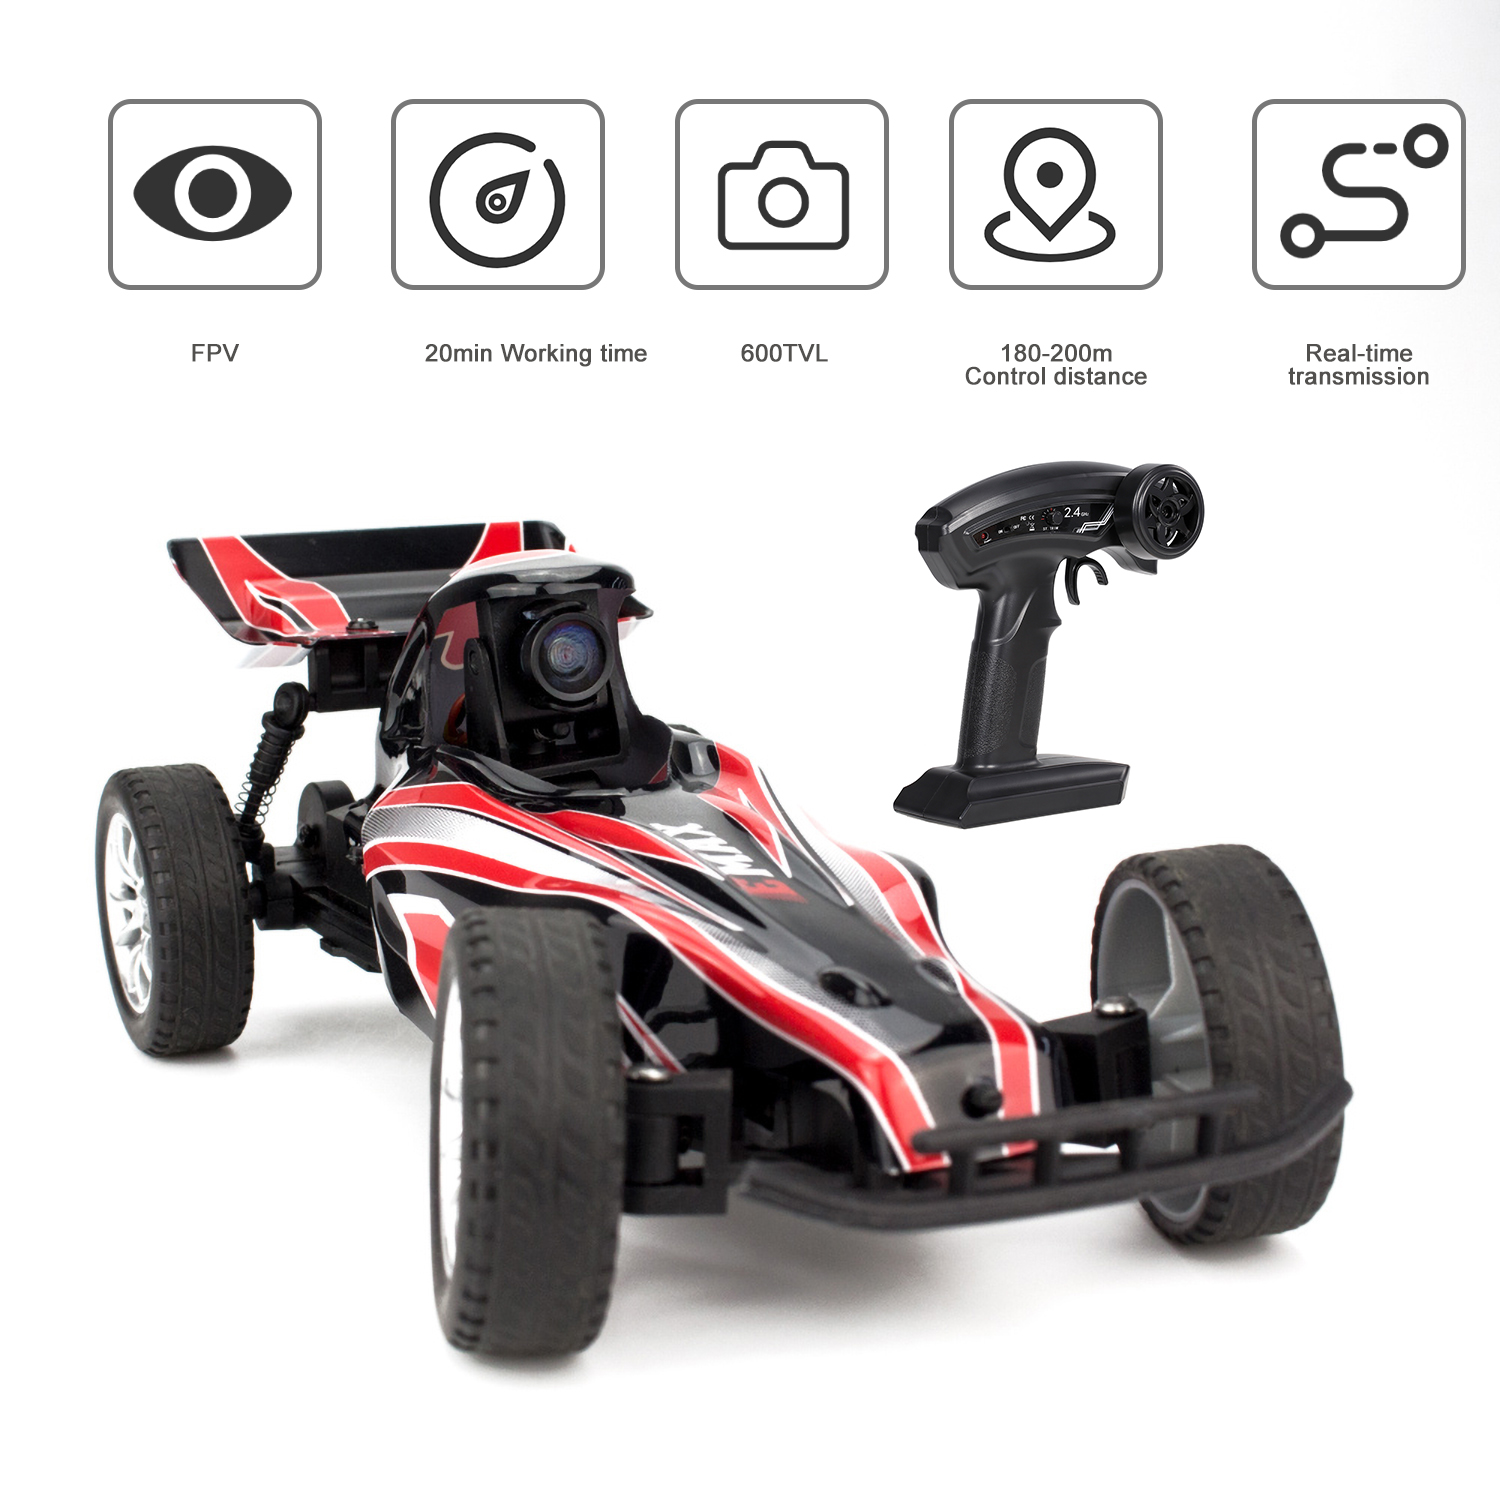 Interceptor Fpv Racing Rc Car With 600tvl Camera 2 4g 1 24 Indoor Remote Control Car Race Vision With Fpv Glasses Toys Gift Kids Rc Cars Aliexpress